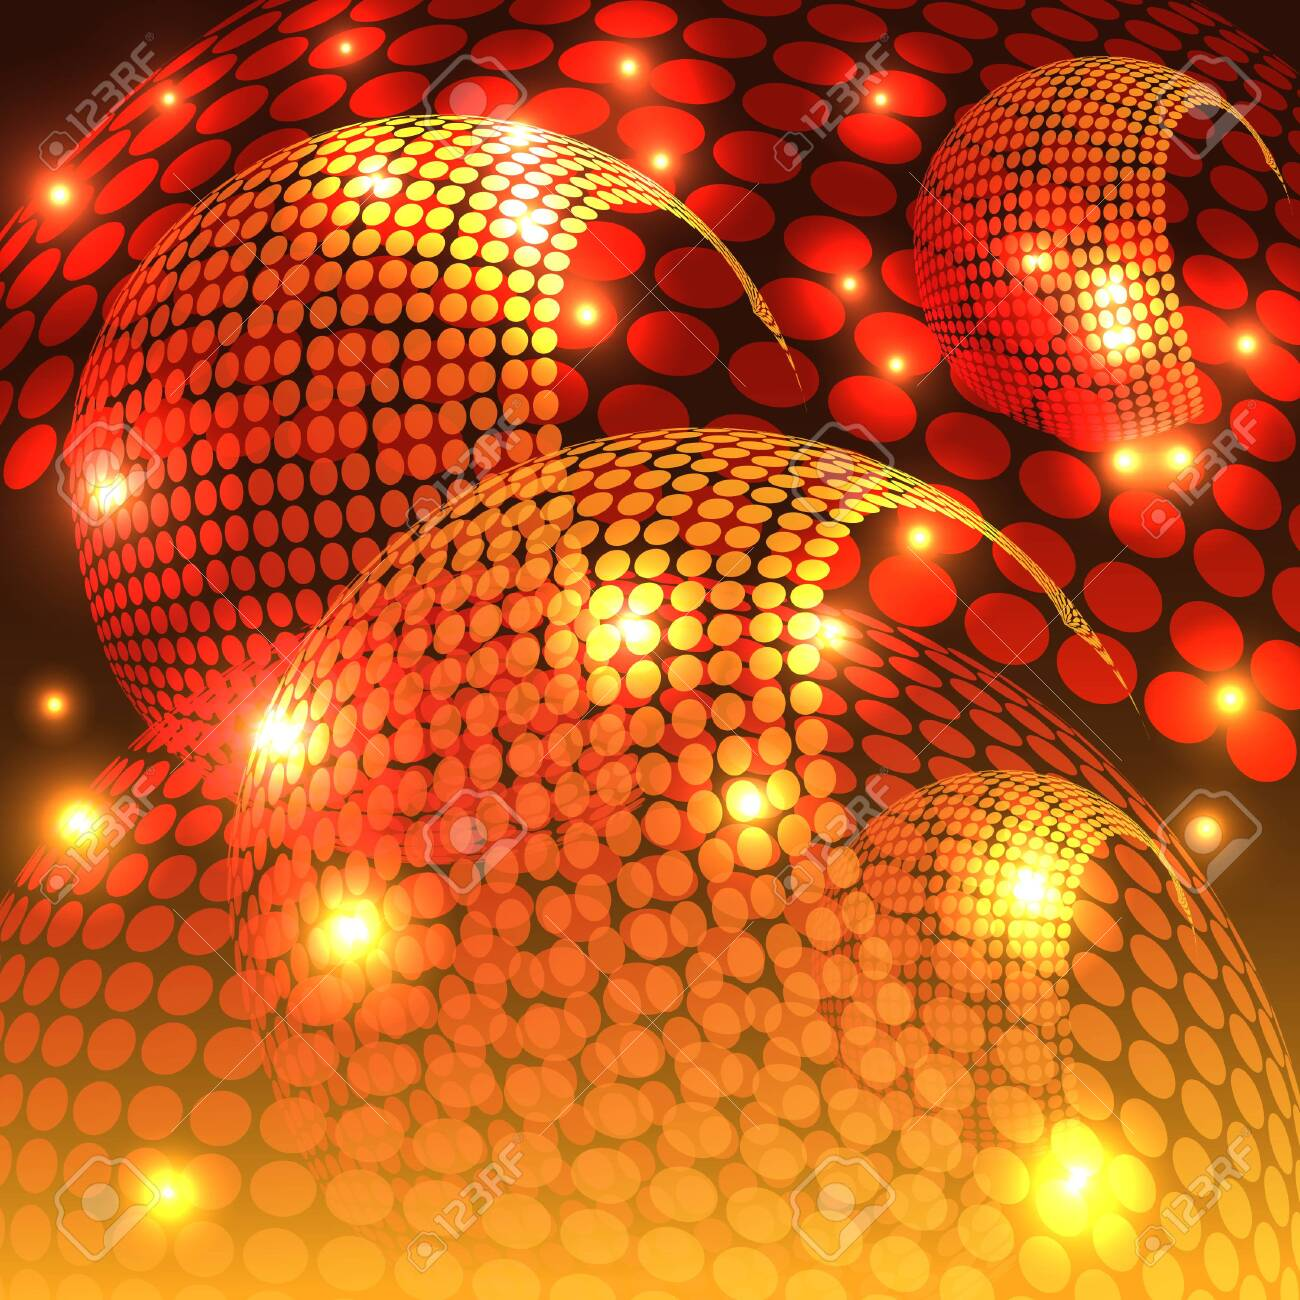 An abstract rendering of a disco night with shades of orange. - 130400270